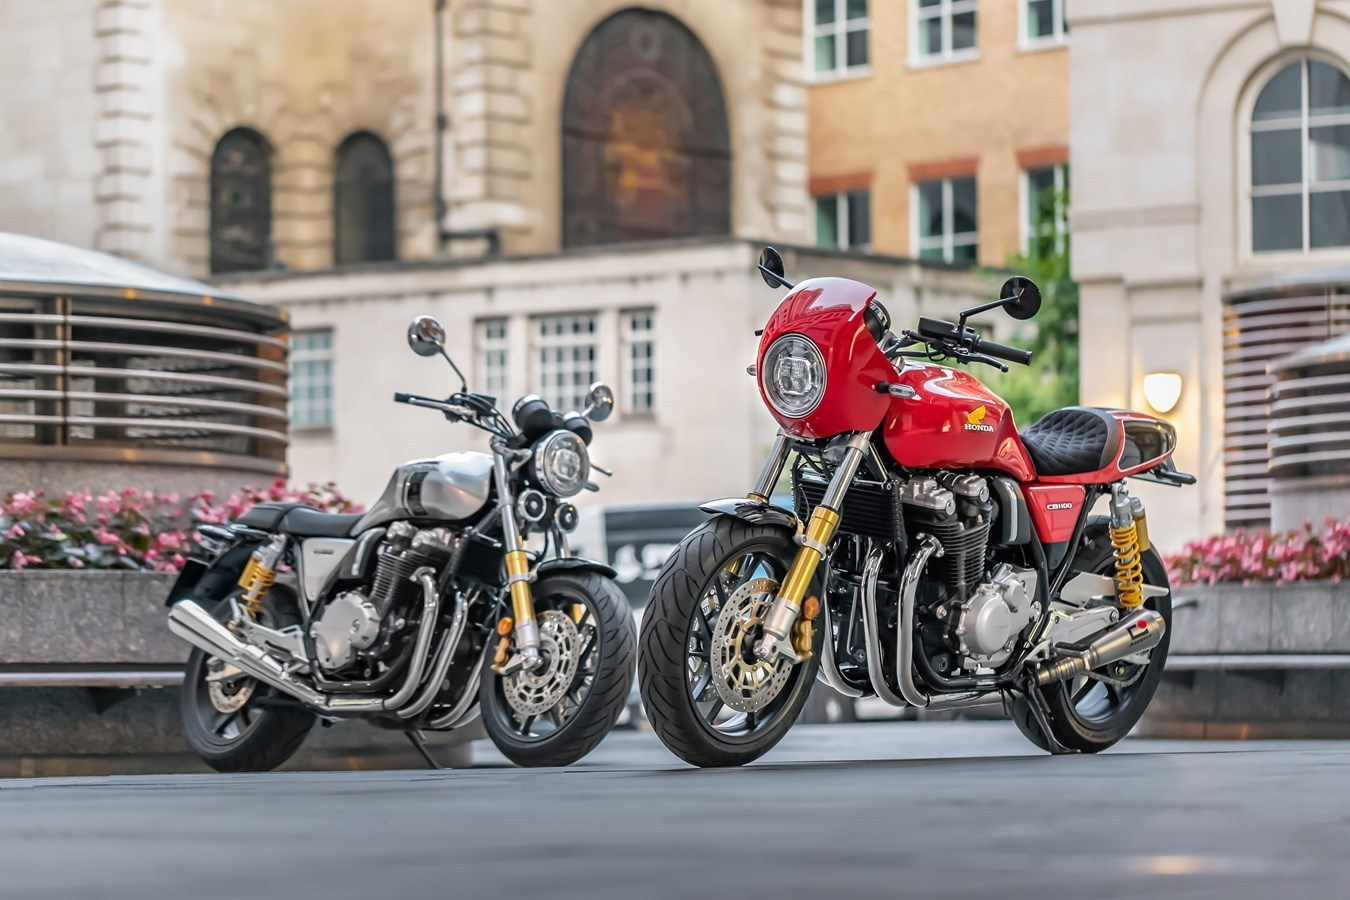 Honda UK Teamed Up With 5Four Motorcycles To Make Limited Edition CB1100 RS WebBikeWorld